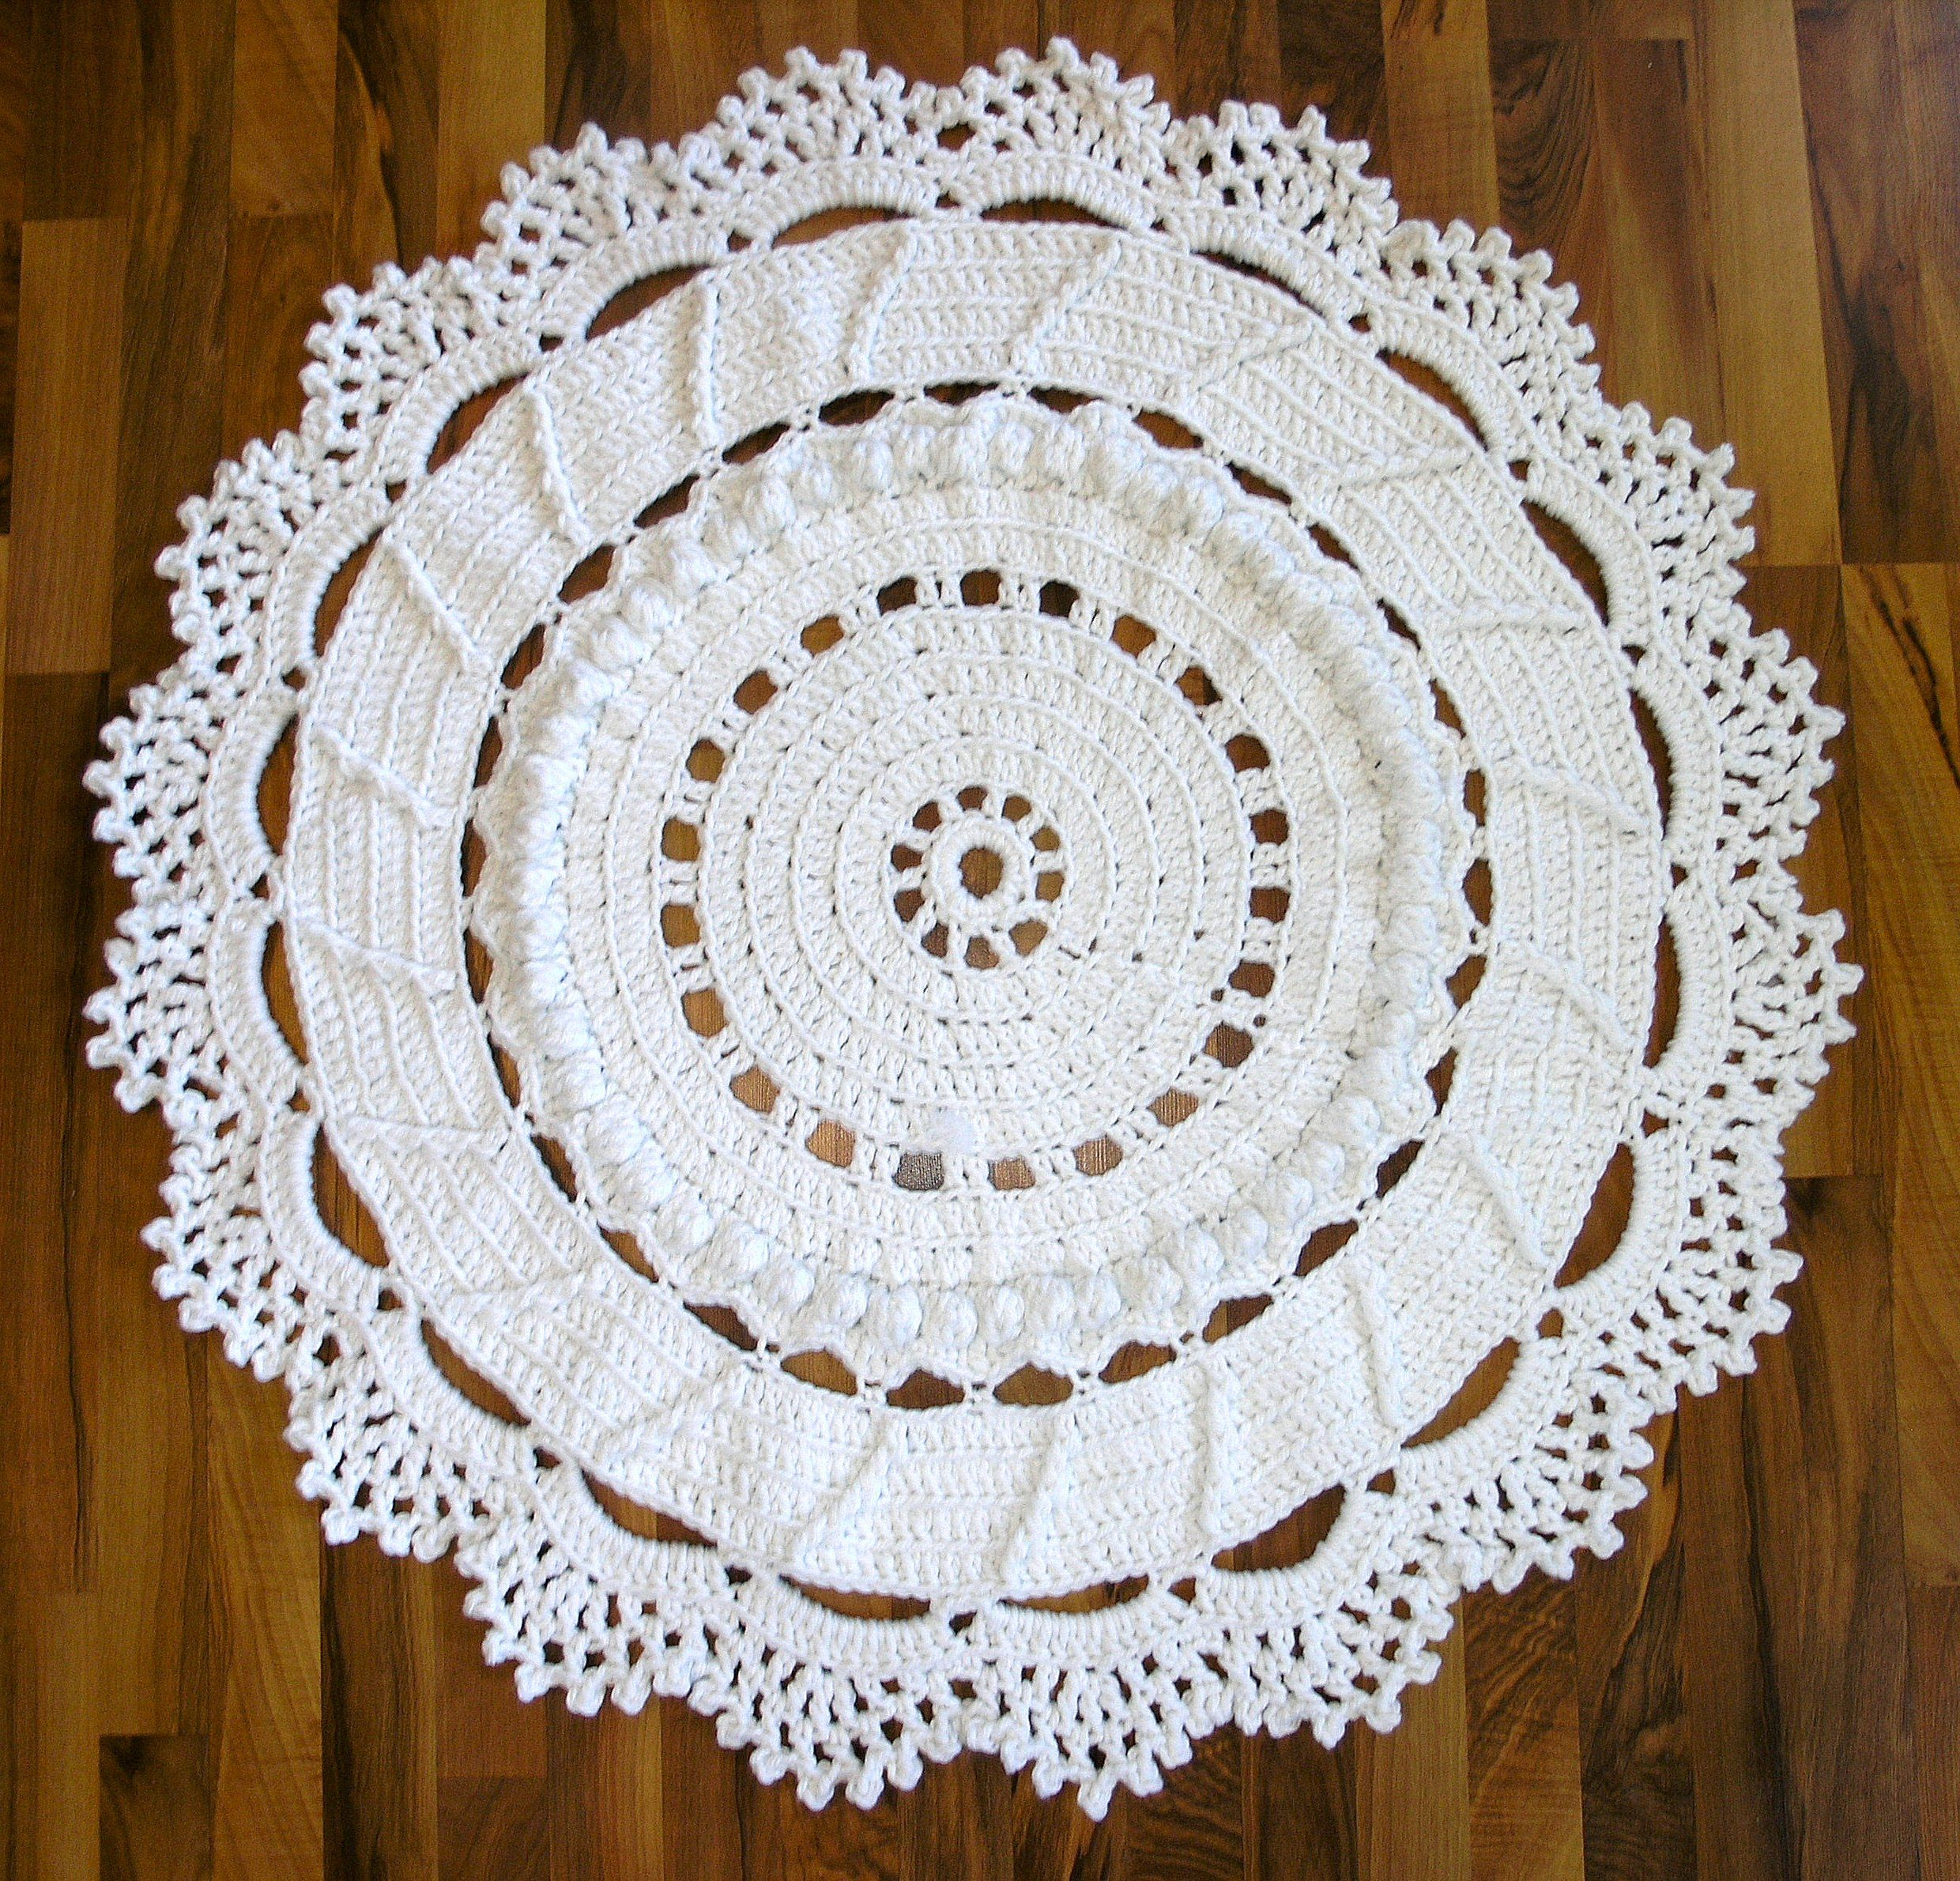 Dances With Wools Blog Archive A Giant Crochet Doily Rug For Our Living Room Crochet Doily Rug Crochet Rug Patterns Doily Rug